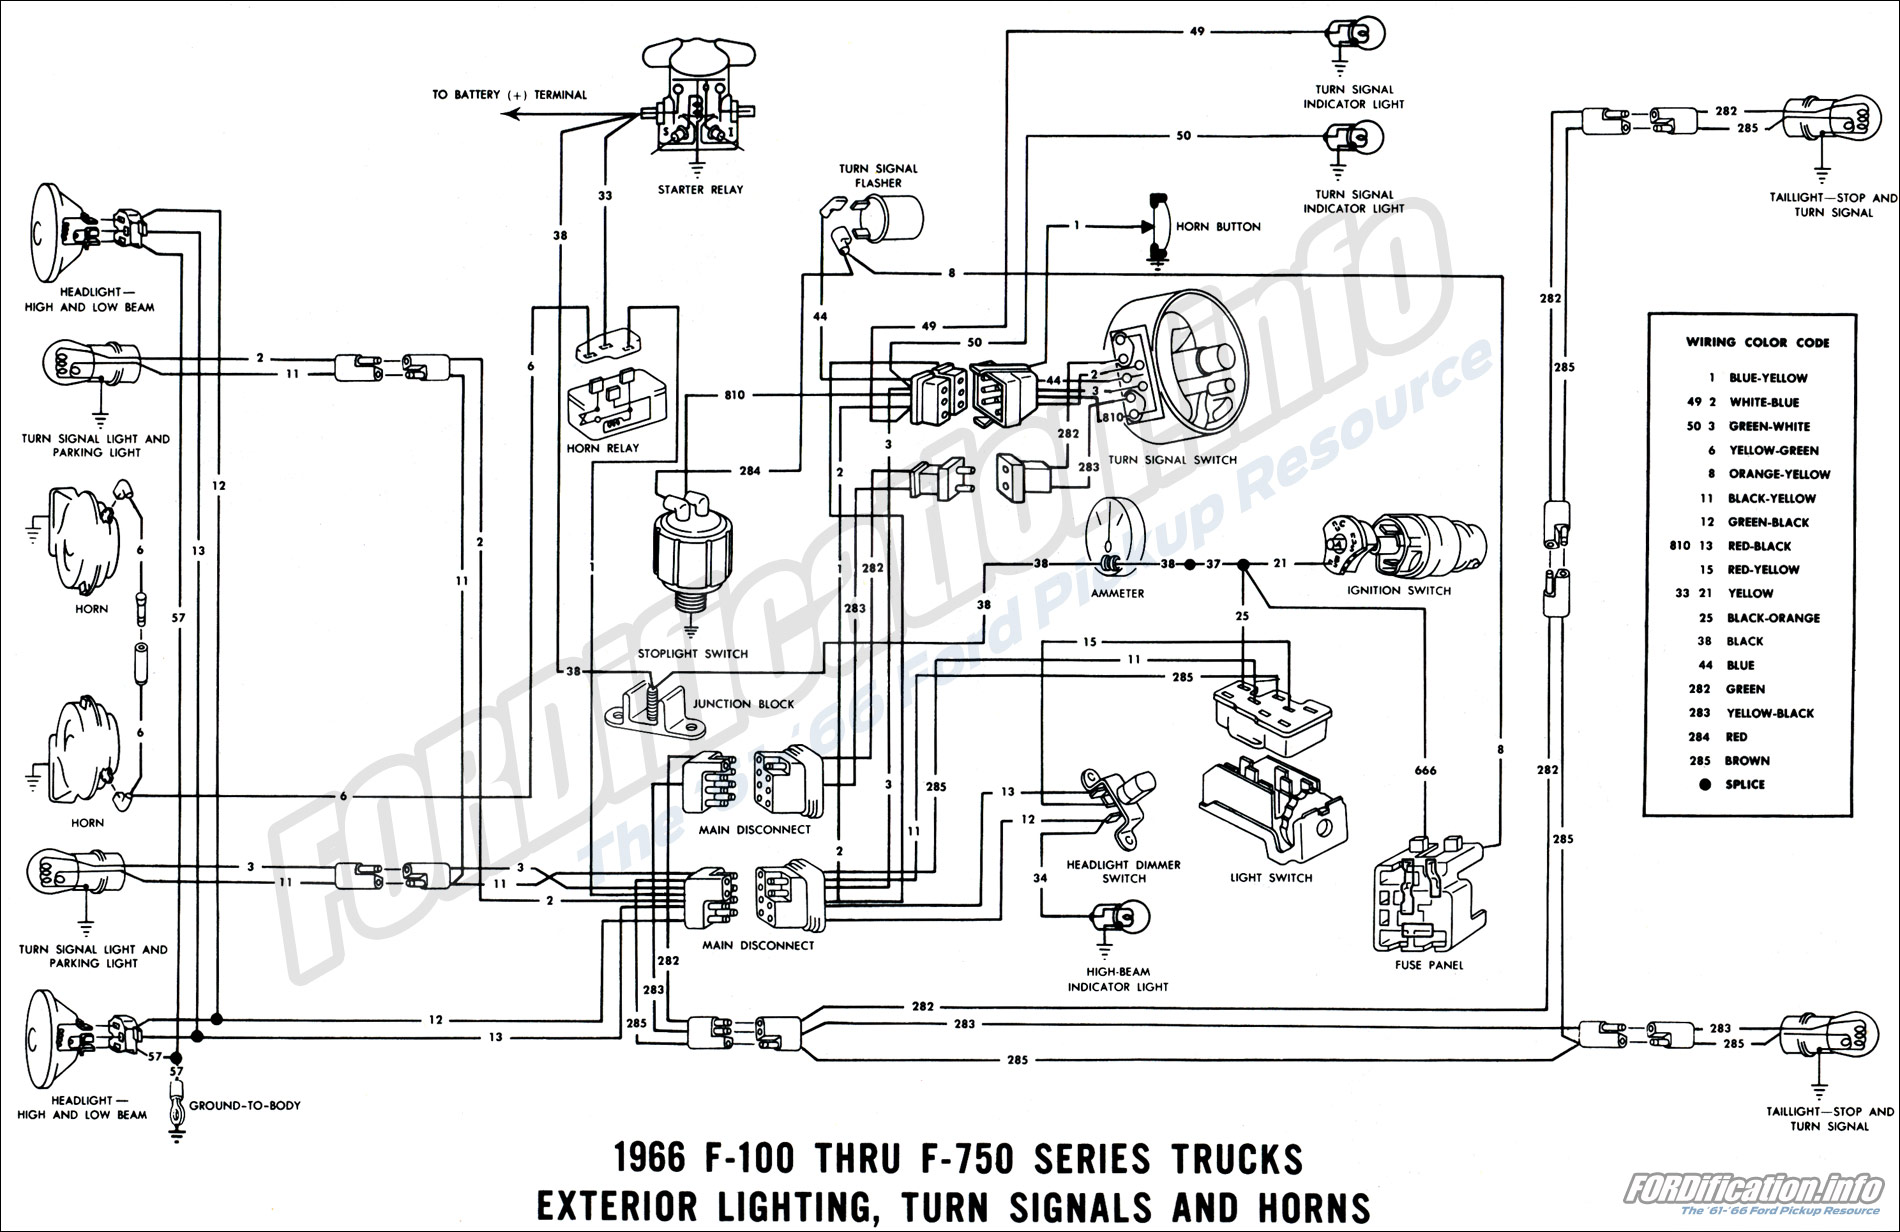 1966    Ford Truck    Wiring       Diagrams     FORDificationinfo  The